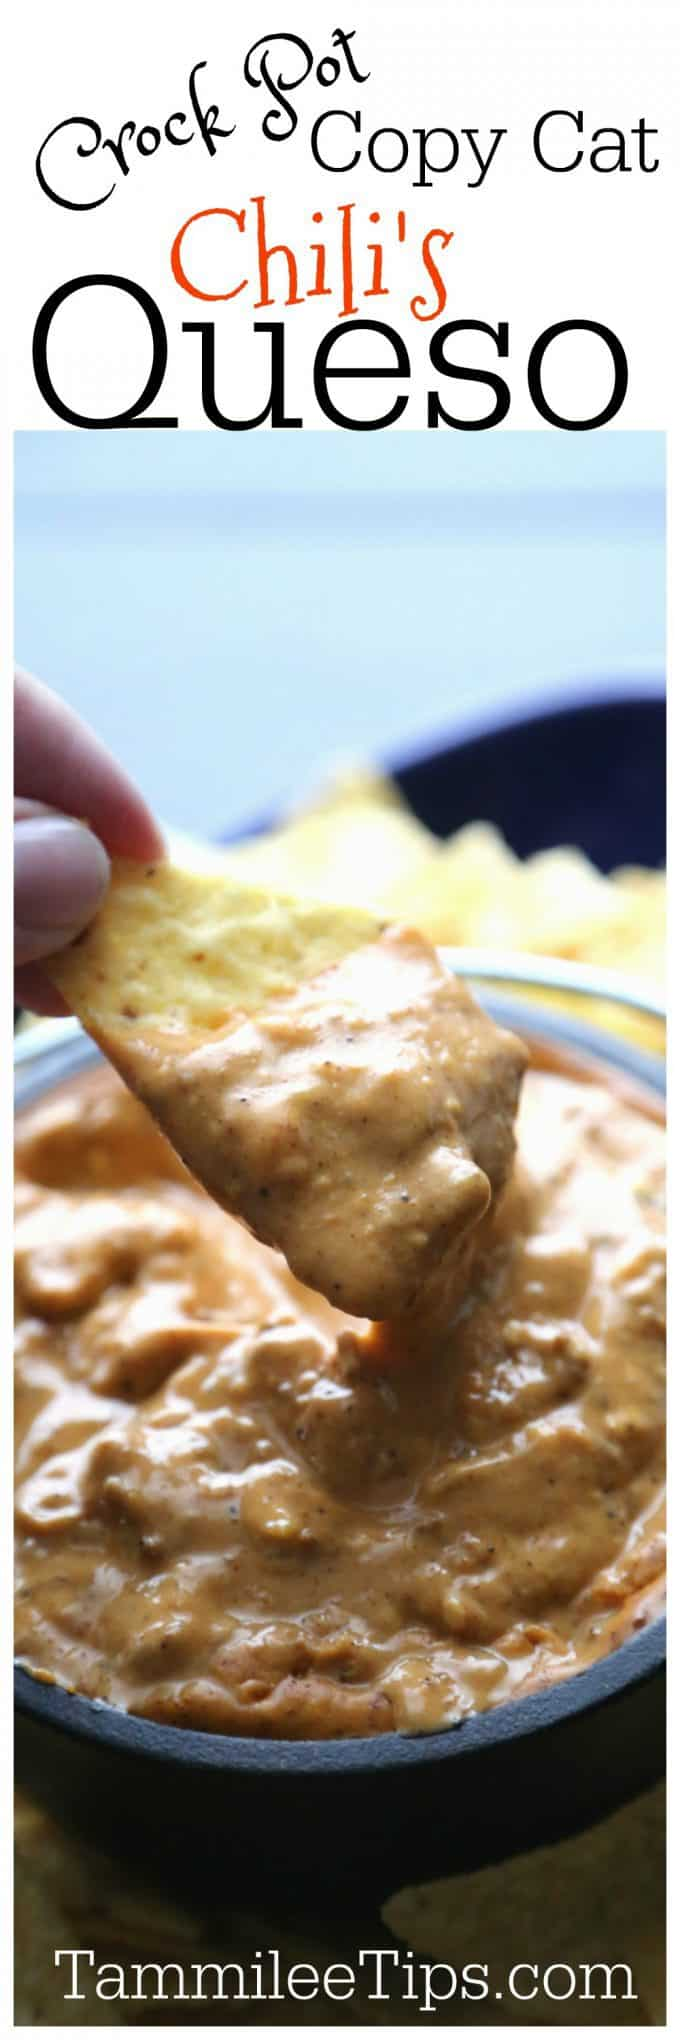 Easy Best Crockpot Copy Cat Chilis Queso Cheese Dip Recipe perfect for Super Bowl Football Parties or any day of the week! So easy to make the slow cooker Crock Pot does all the work! Beef, lots of Velveeta cheese and a bit of spice make this a great appetizer recipe.